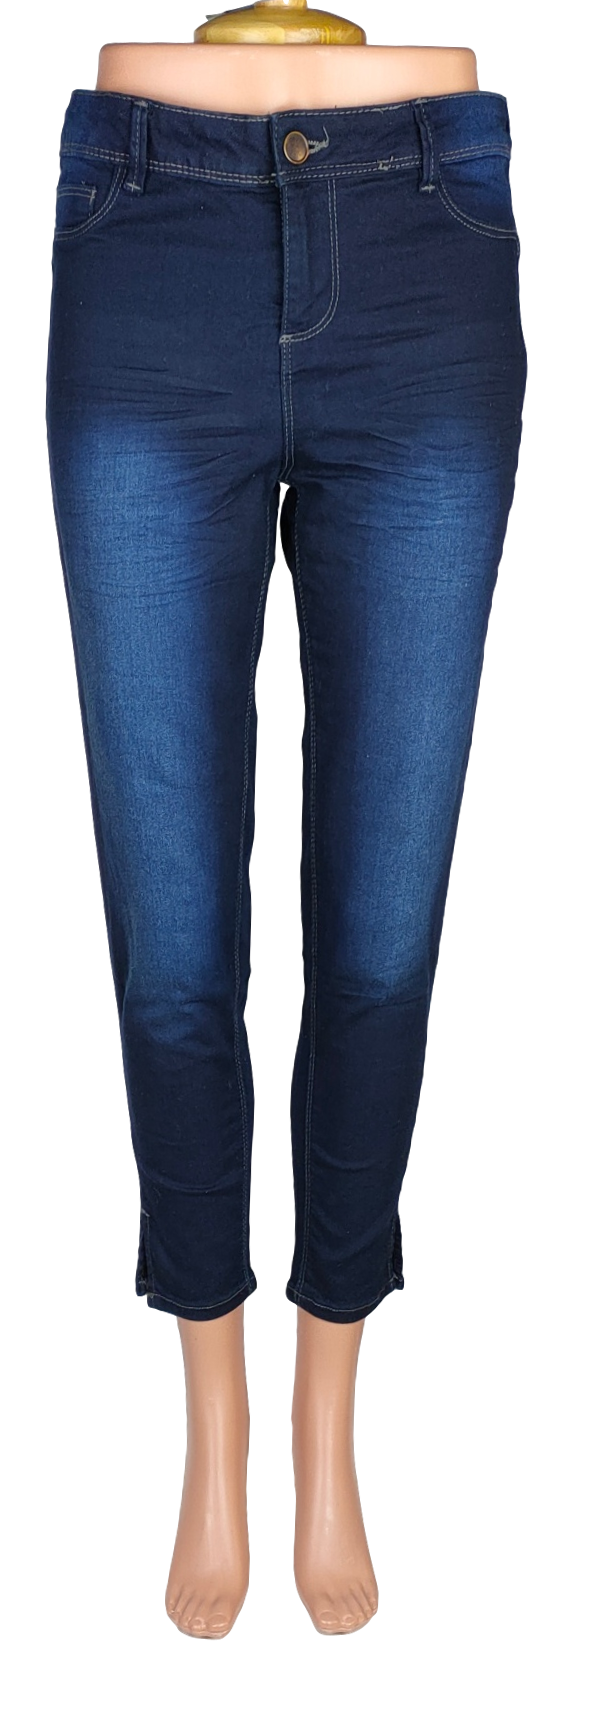 Jean In Extenso -Taille 36